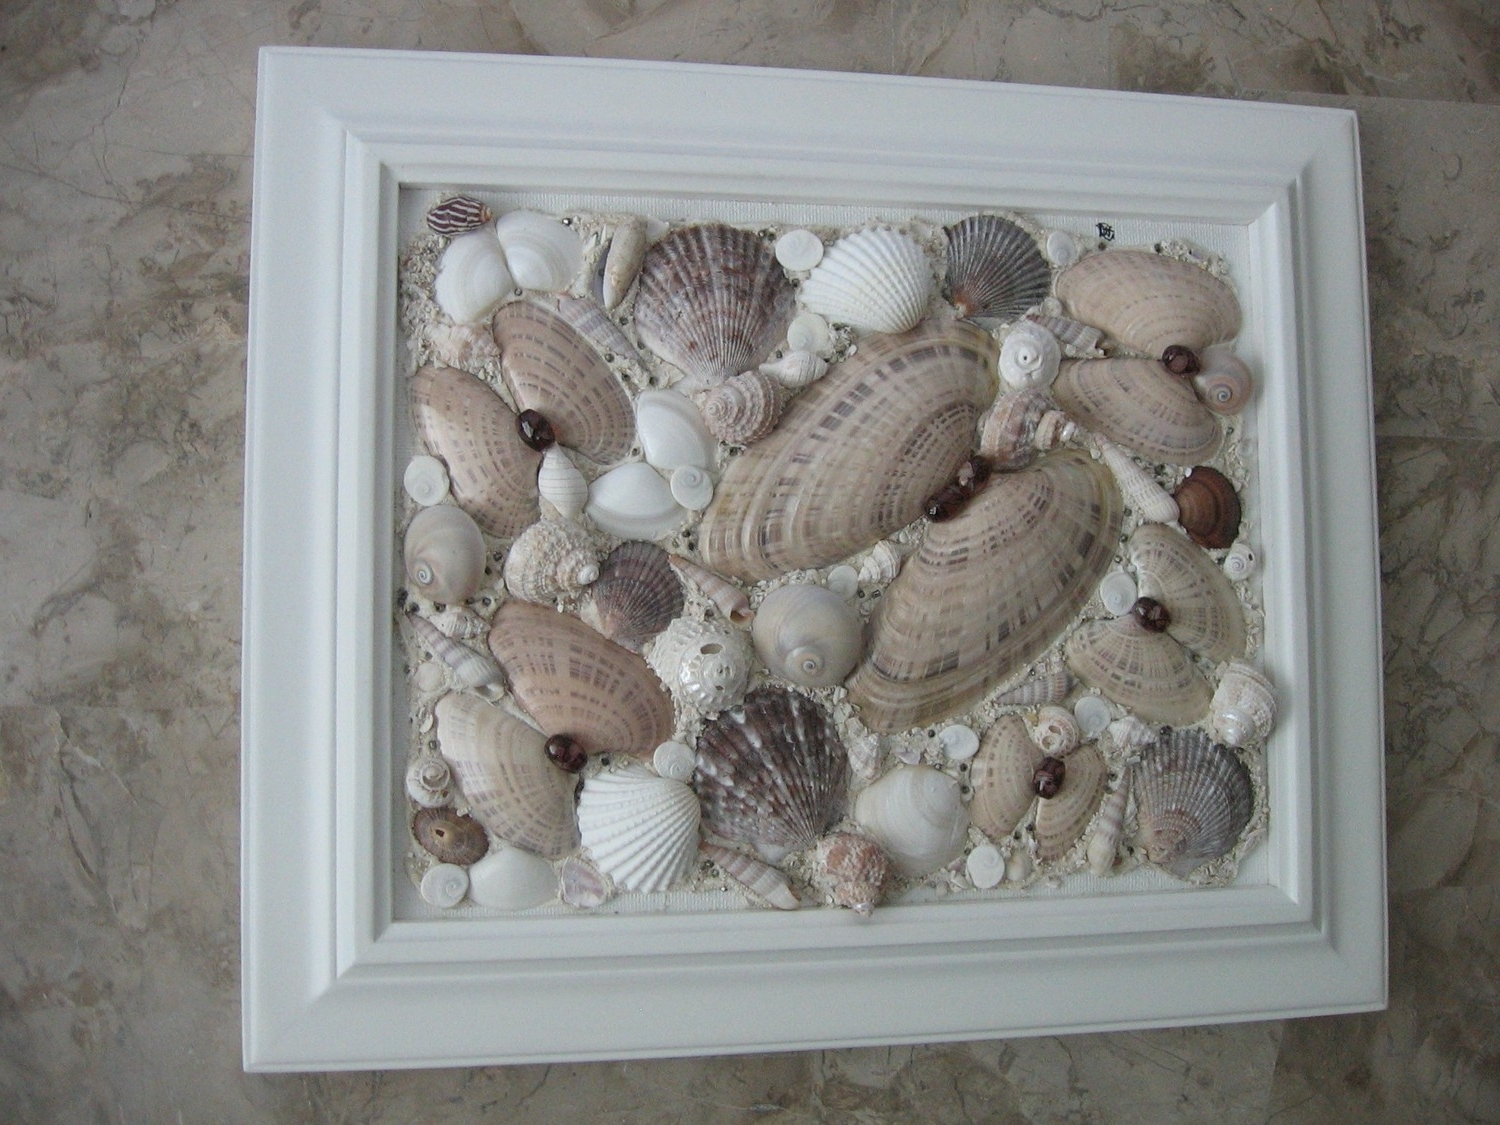 Sea Shell Watercolor Painting Art Conch Beach Landscape Seashell Throughout Current Wall Art With Seashells (View 10 of 15)